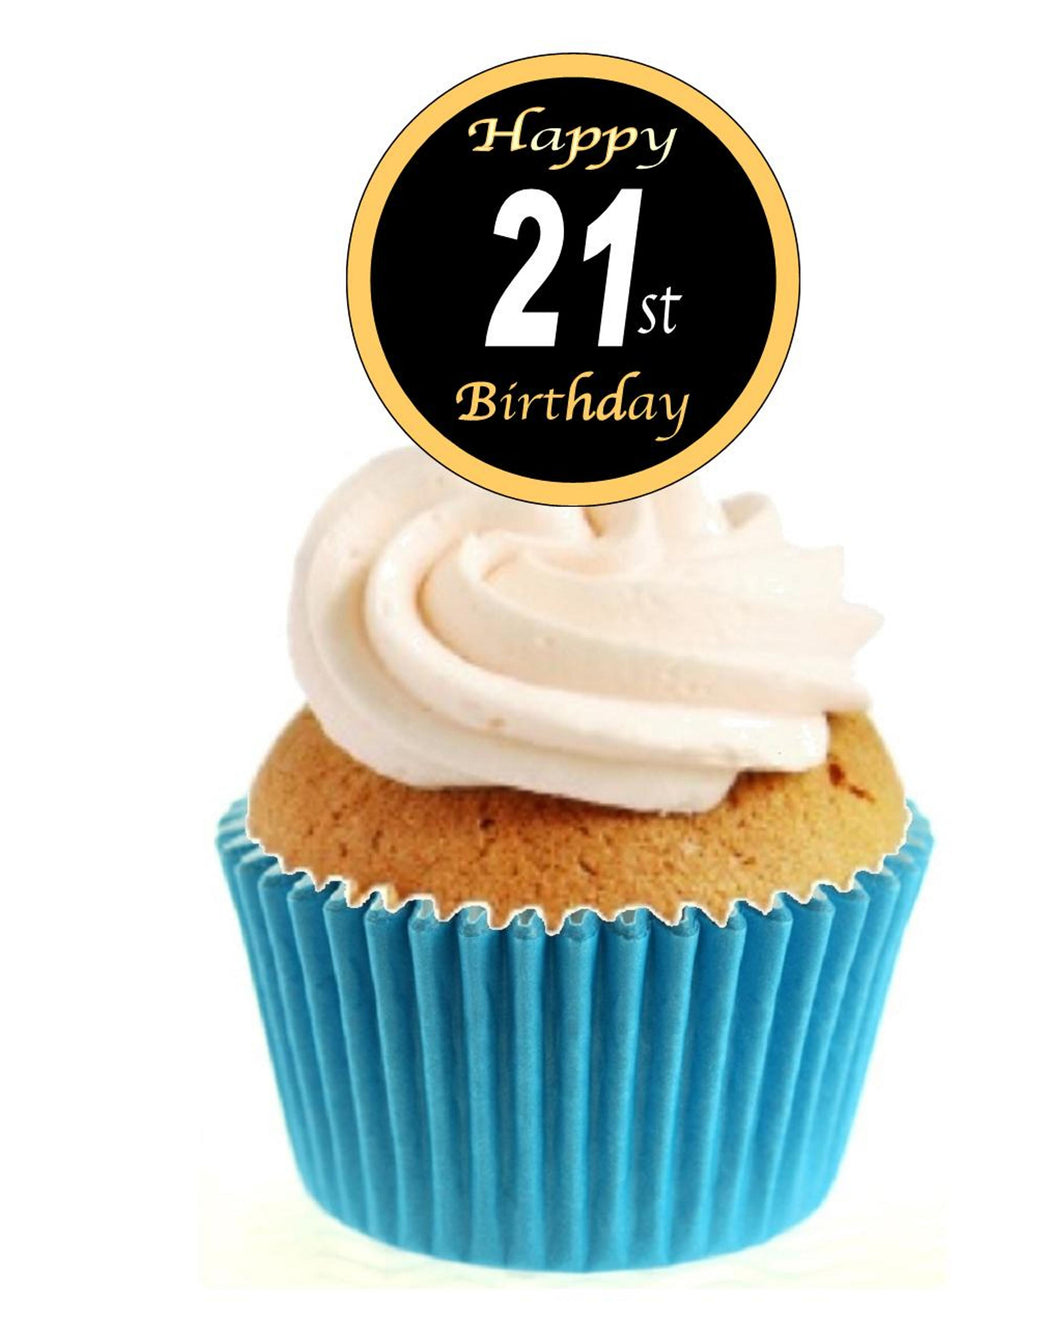 21st Birthday Black / Gold Stand Up Cake Toppers (12 pack)  Pack contains 12 images printed onto premium wafer card